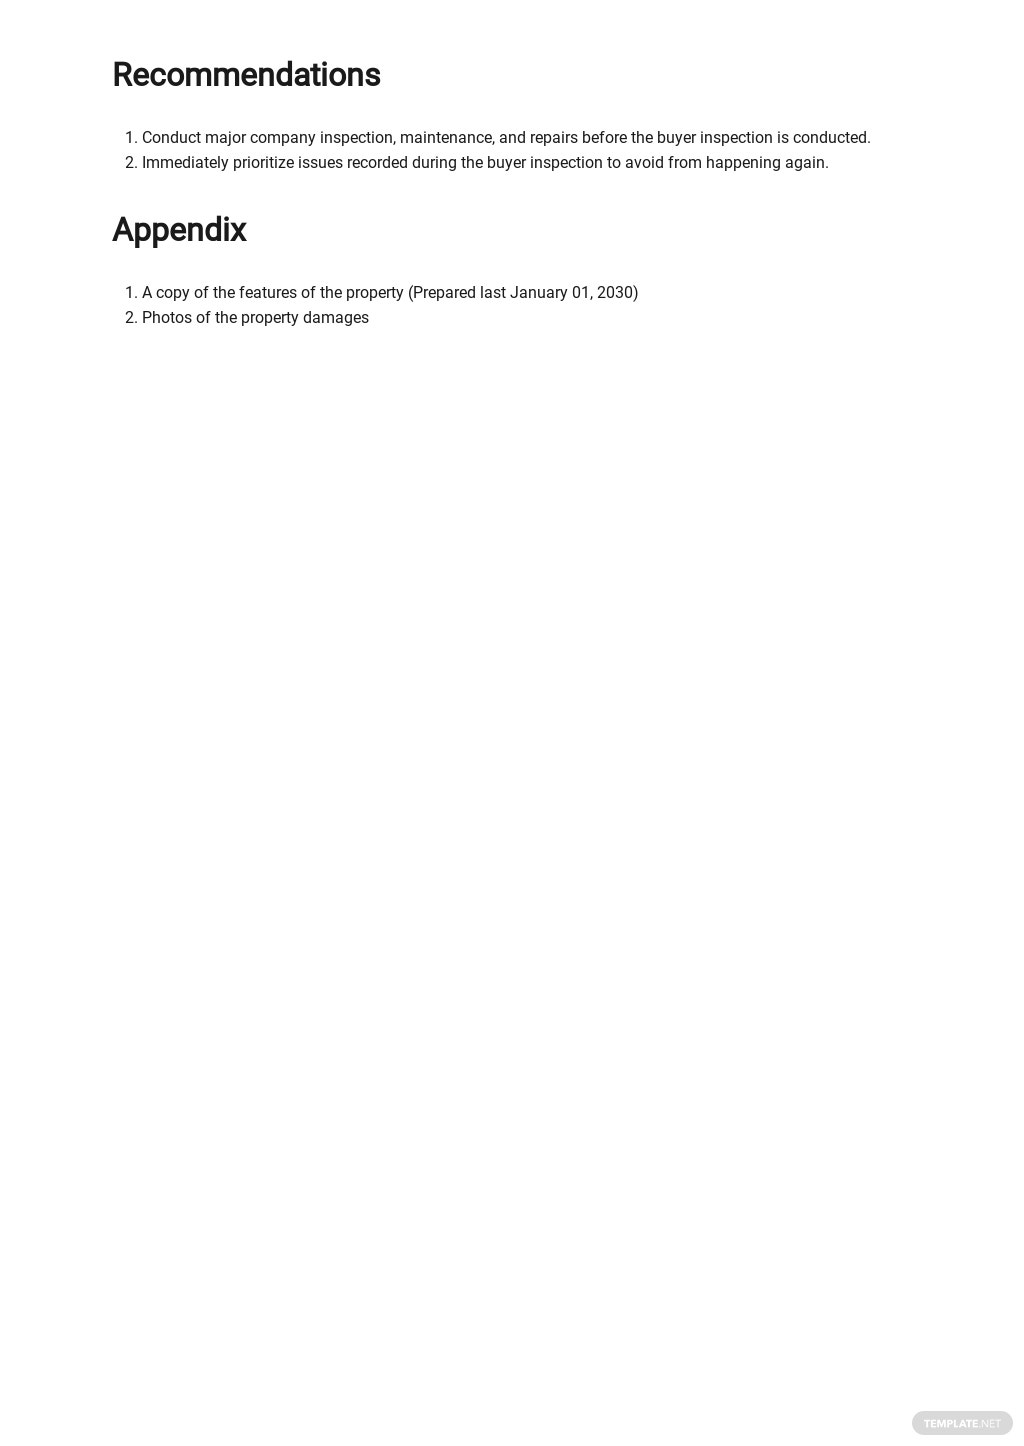 Buyer's Property Inspection Report Template 2.jpe